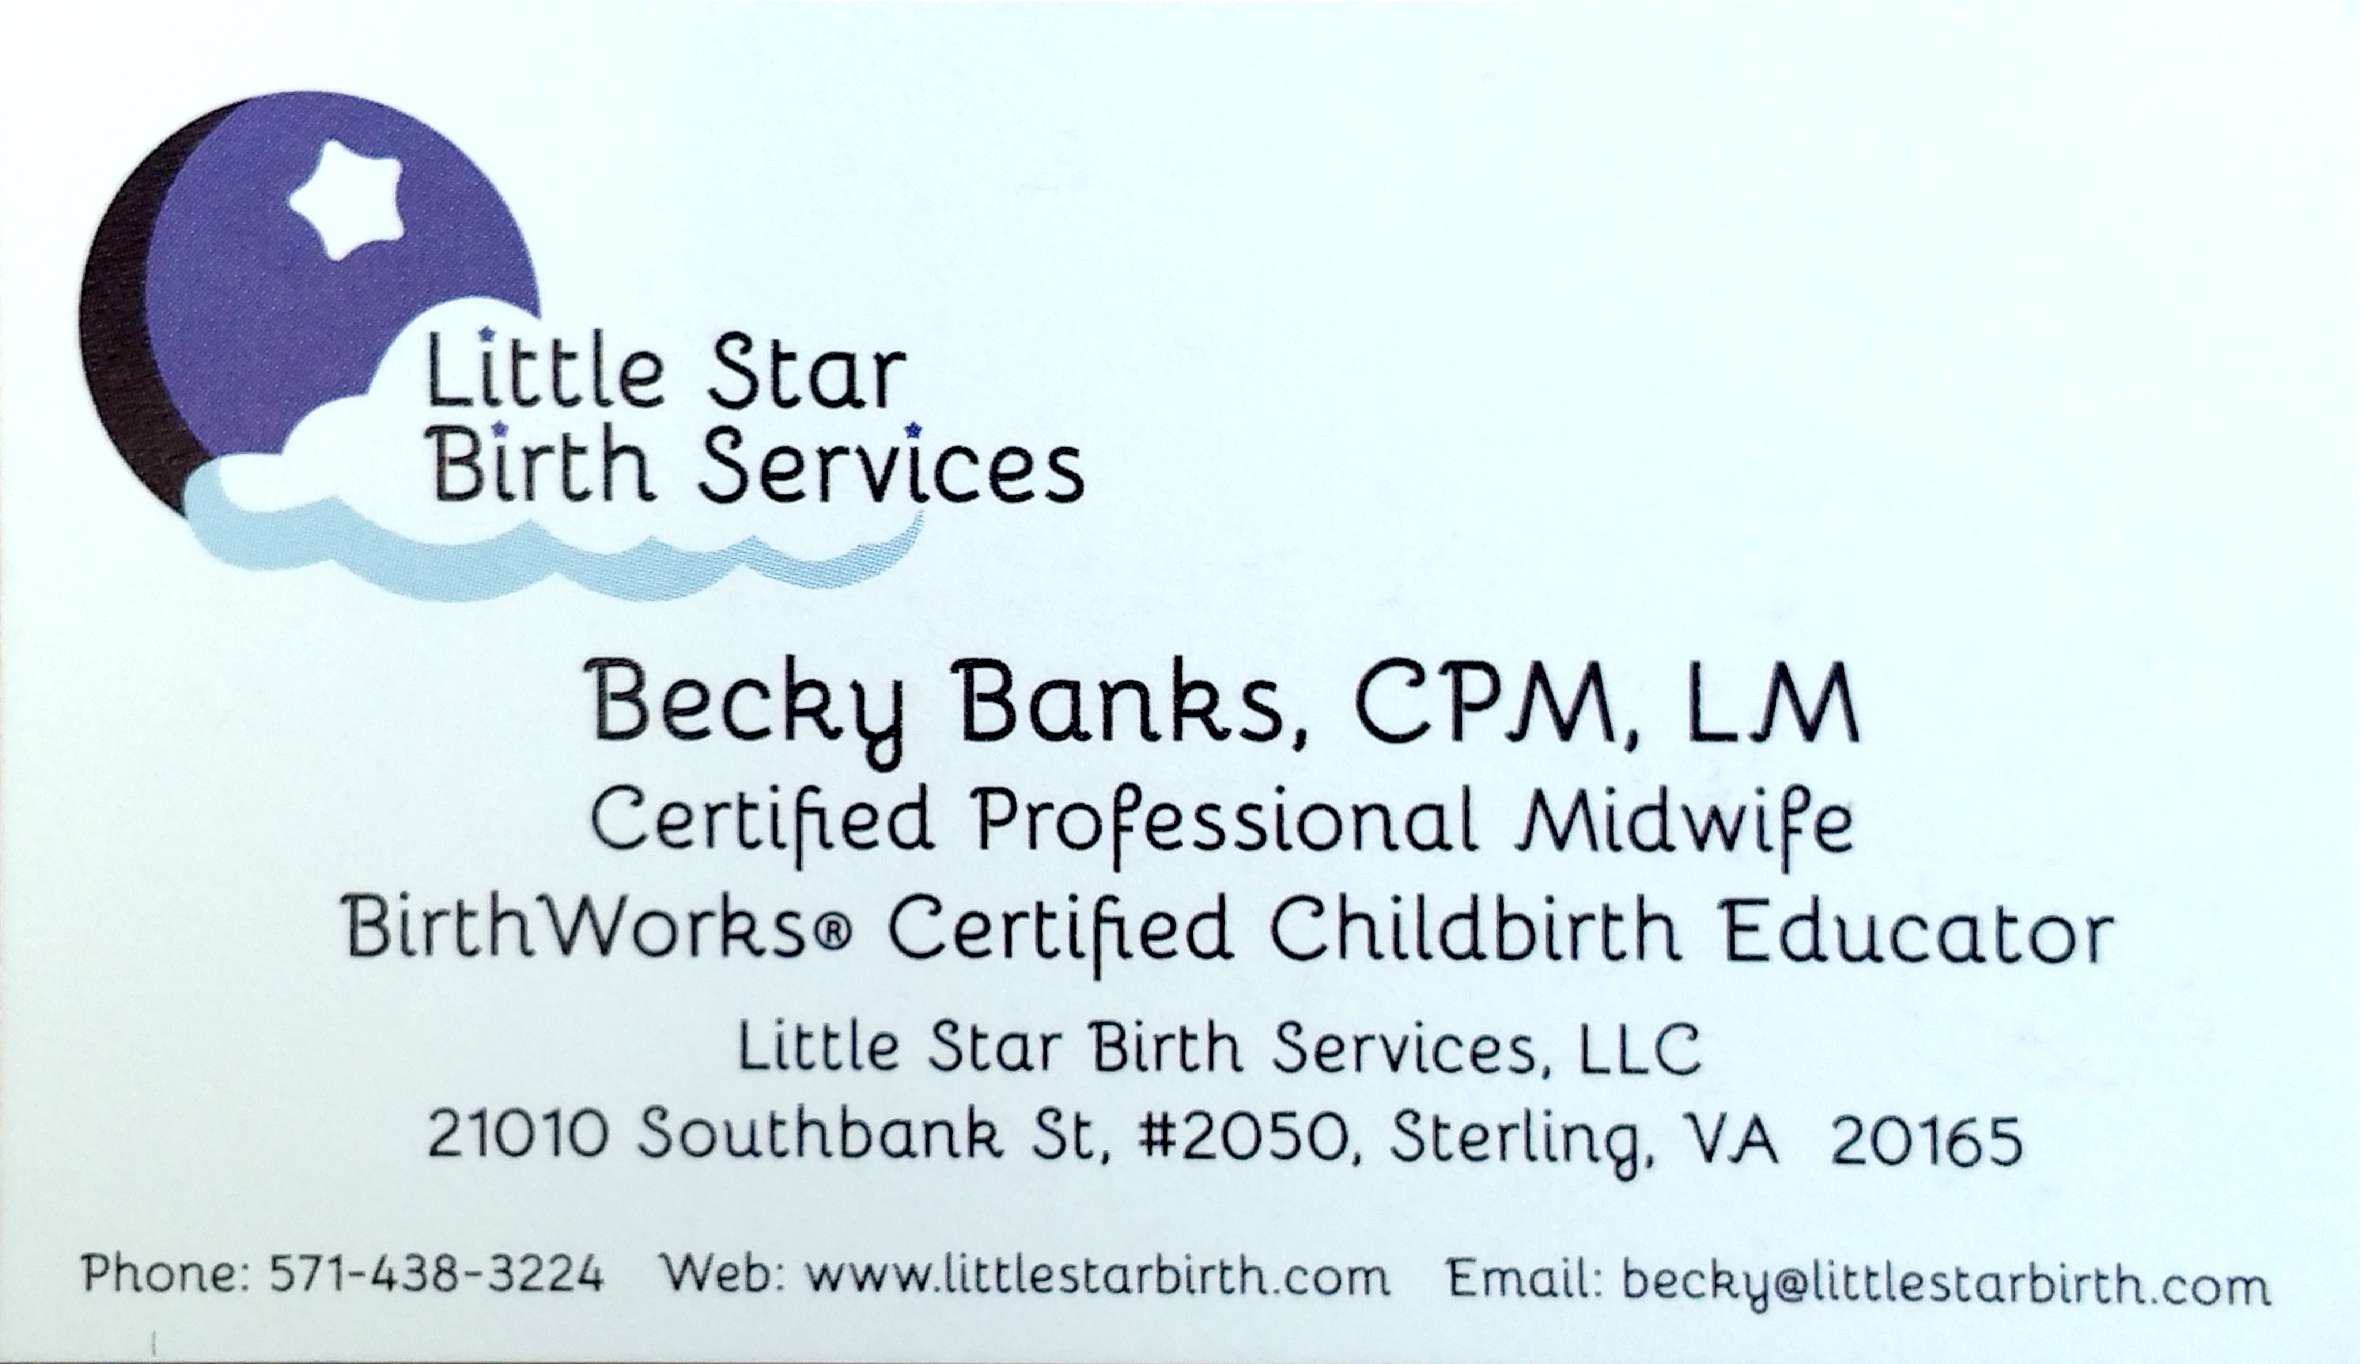 Becky Banks, CPM, LM